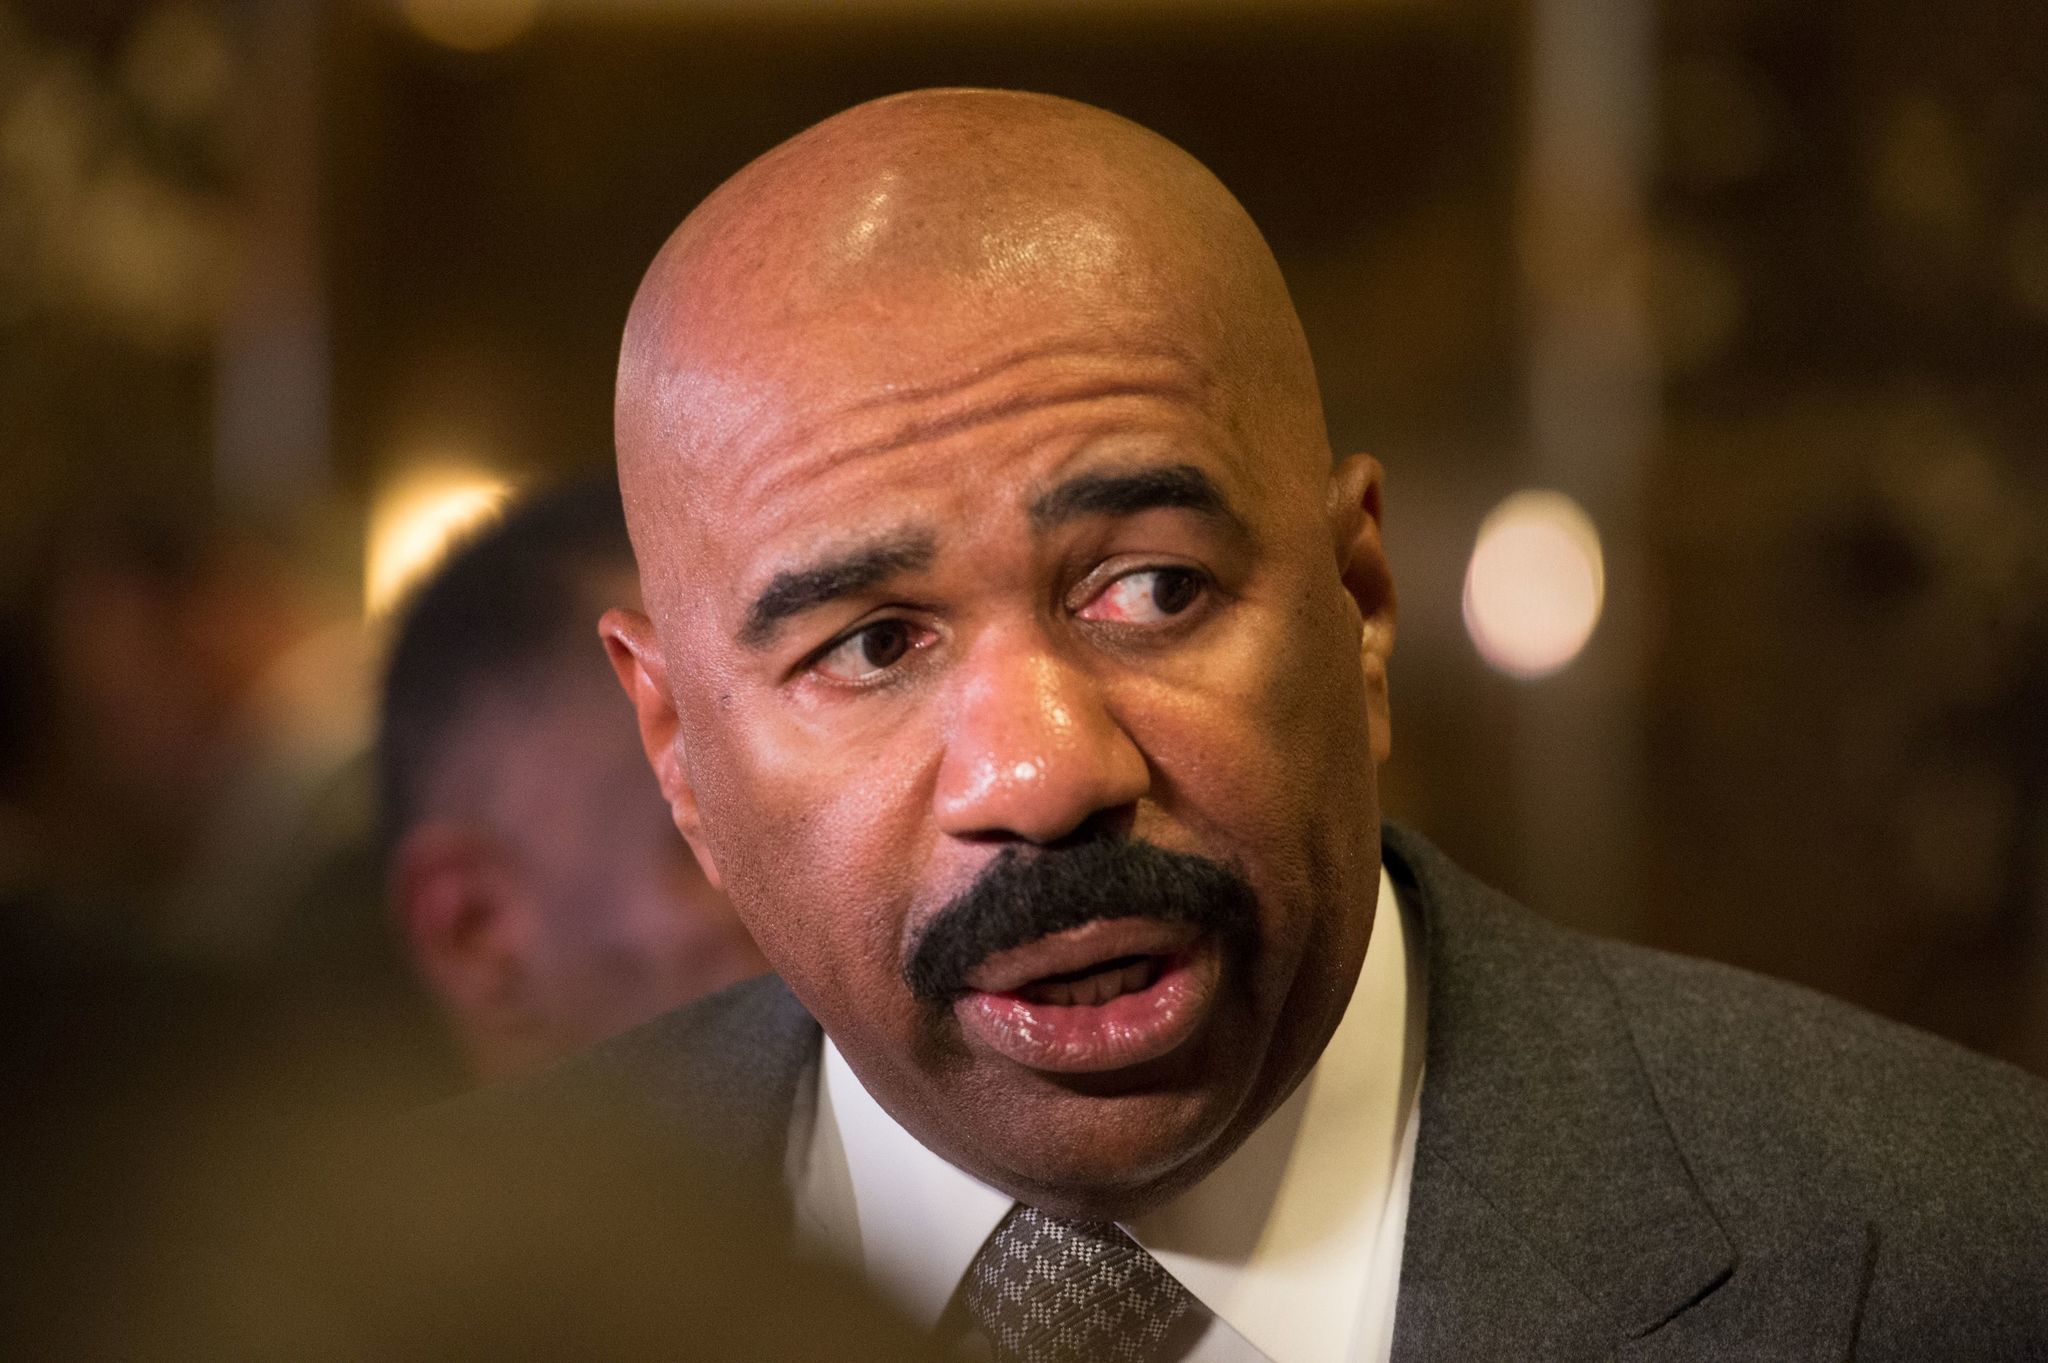 Steve Harvey to revive canceled daytime talk show on Facebook